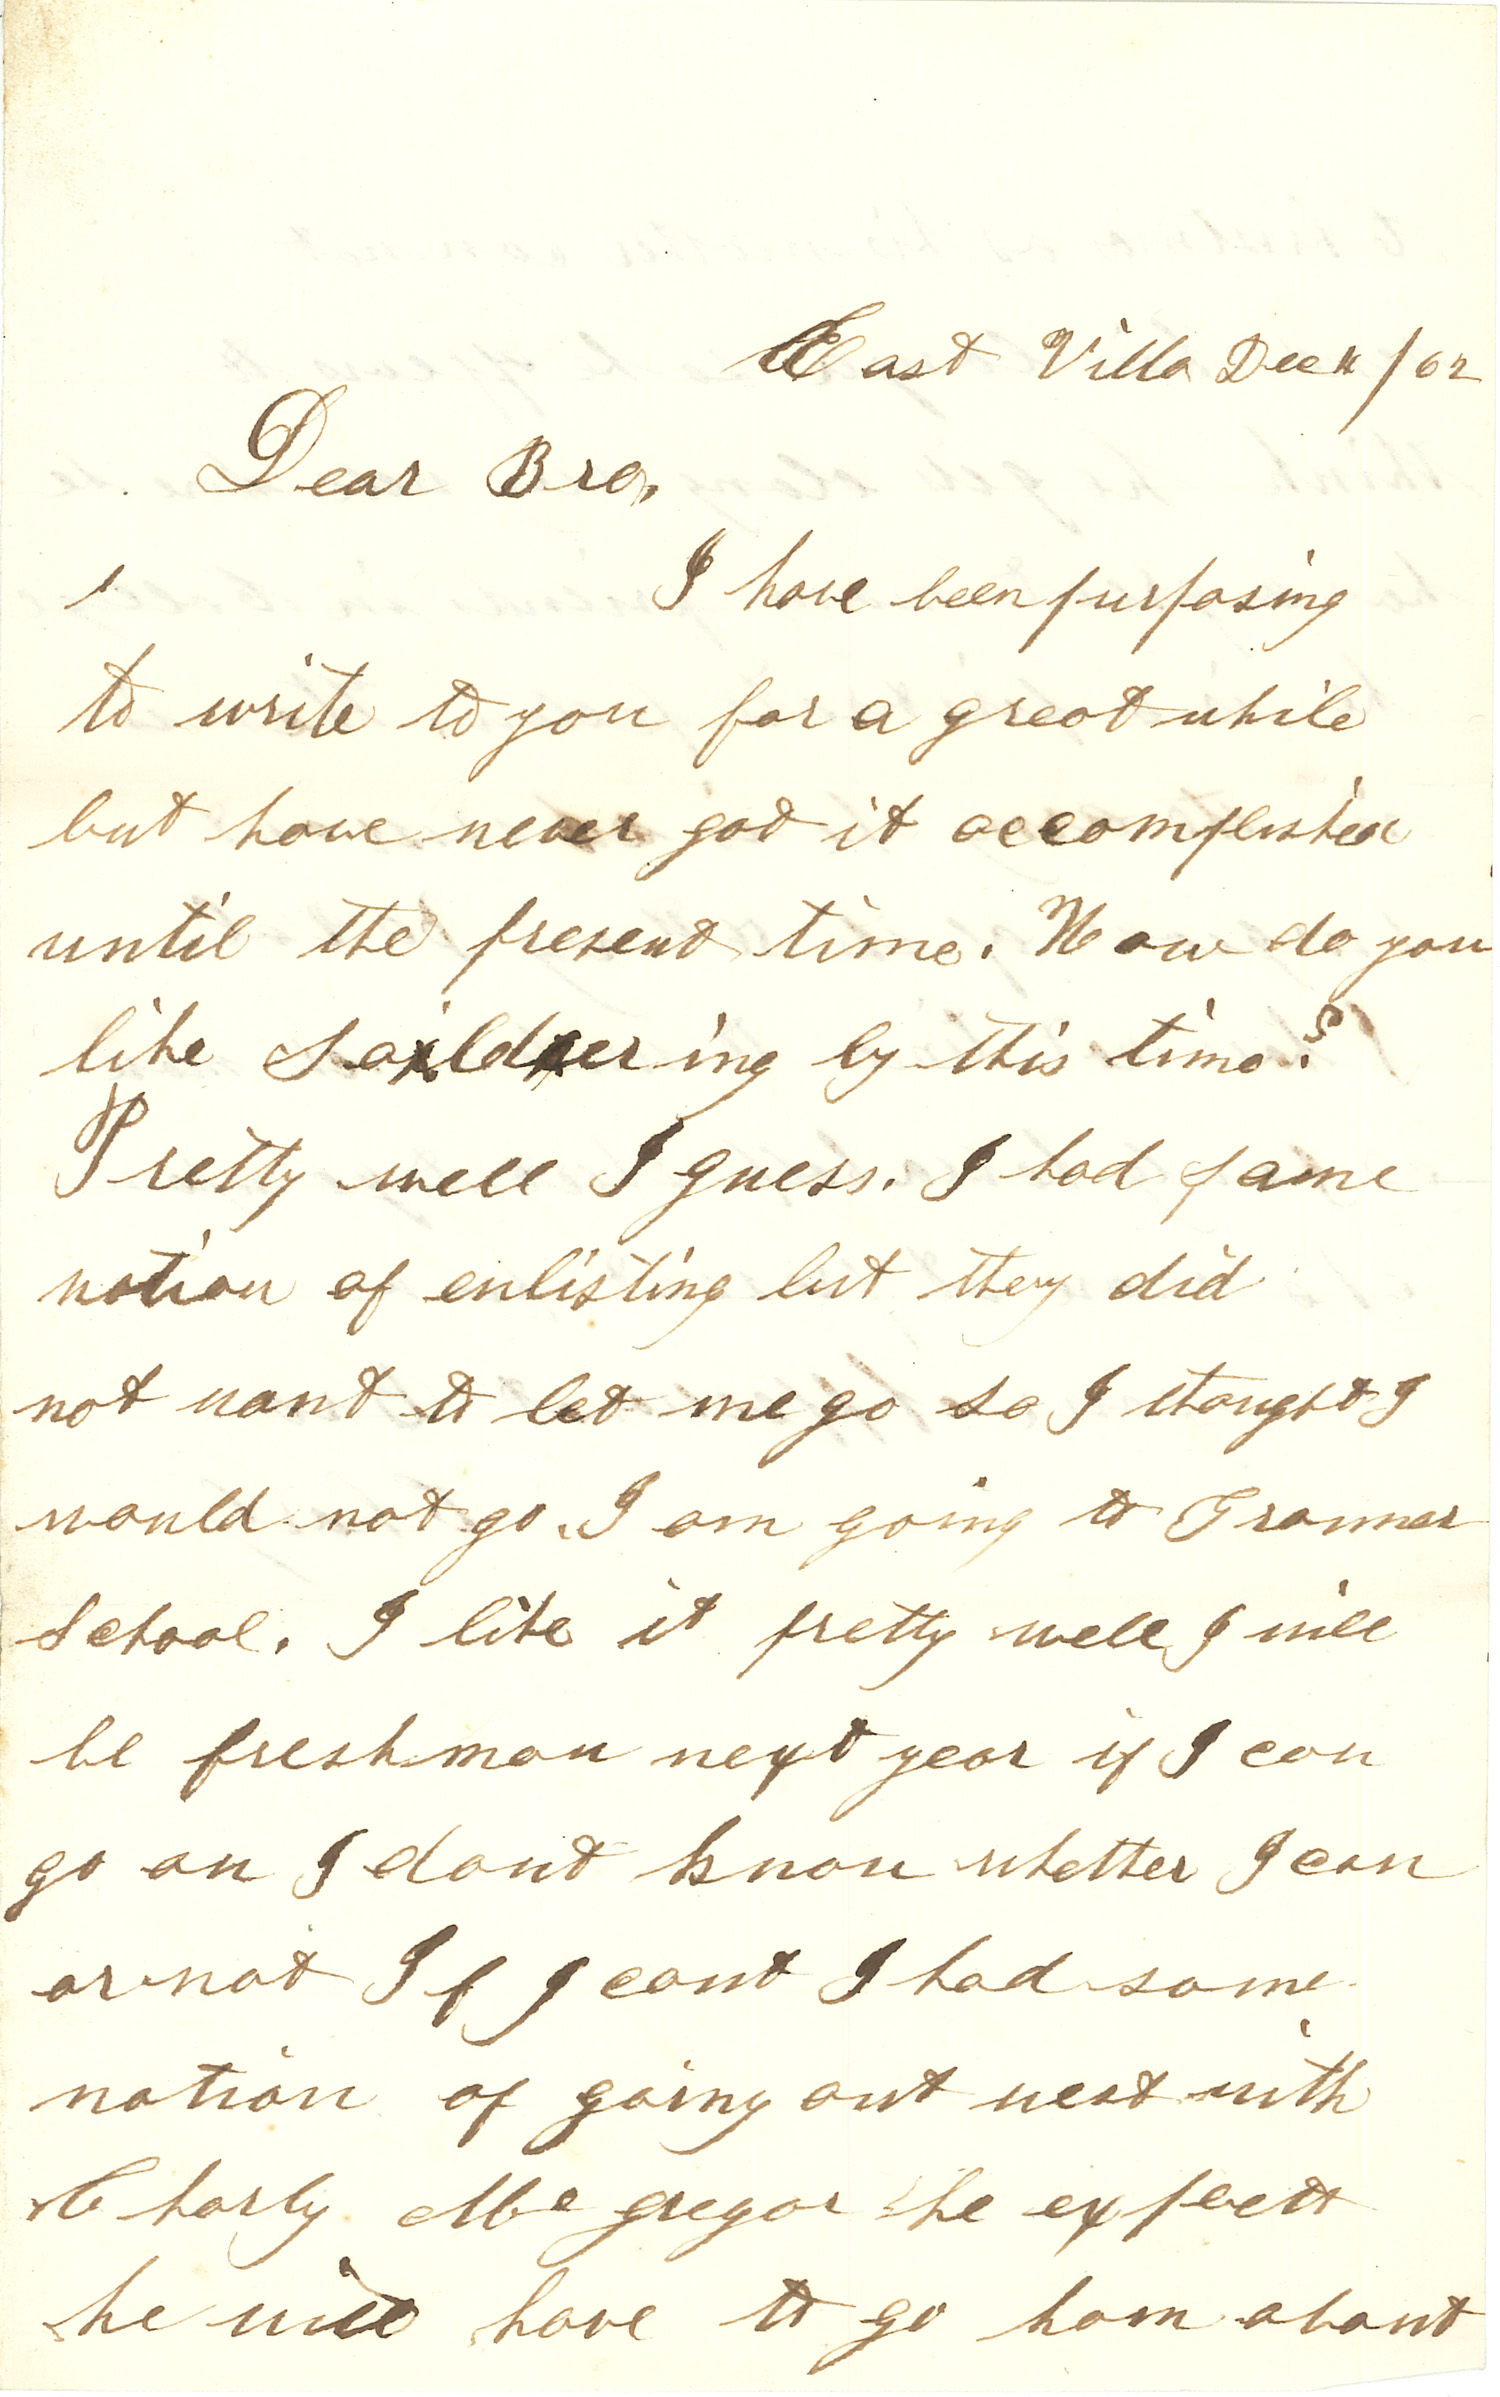 Joseph Culver Letter, December 10, 1862, Page 1